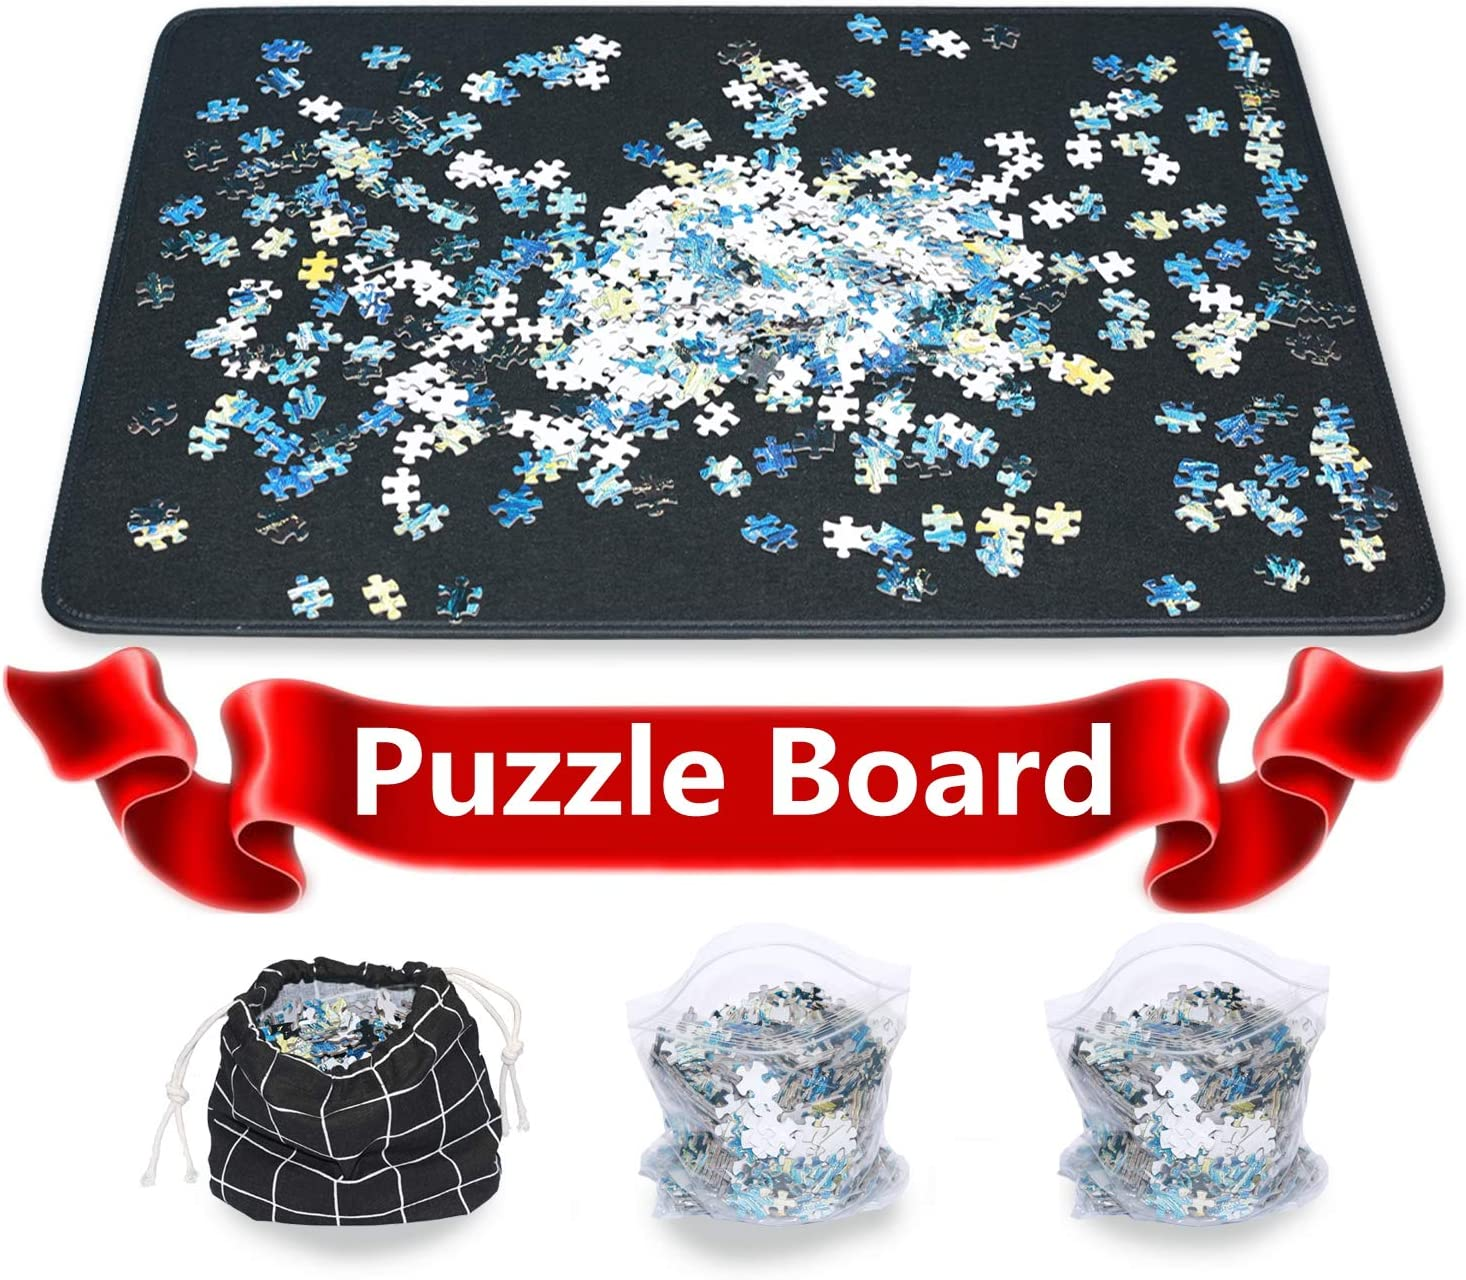 Jigsaw Puzzle Mat Puzzle Board Smooth Puzzle Plateau Portable Board Easy Move Storage Work Separate Jigsaw Mat Board up to 1000 Pieces by Ditome